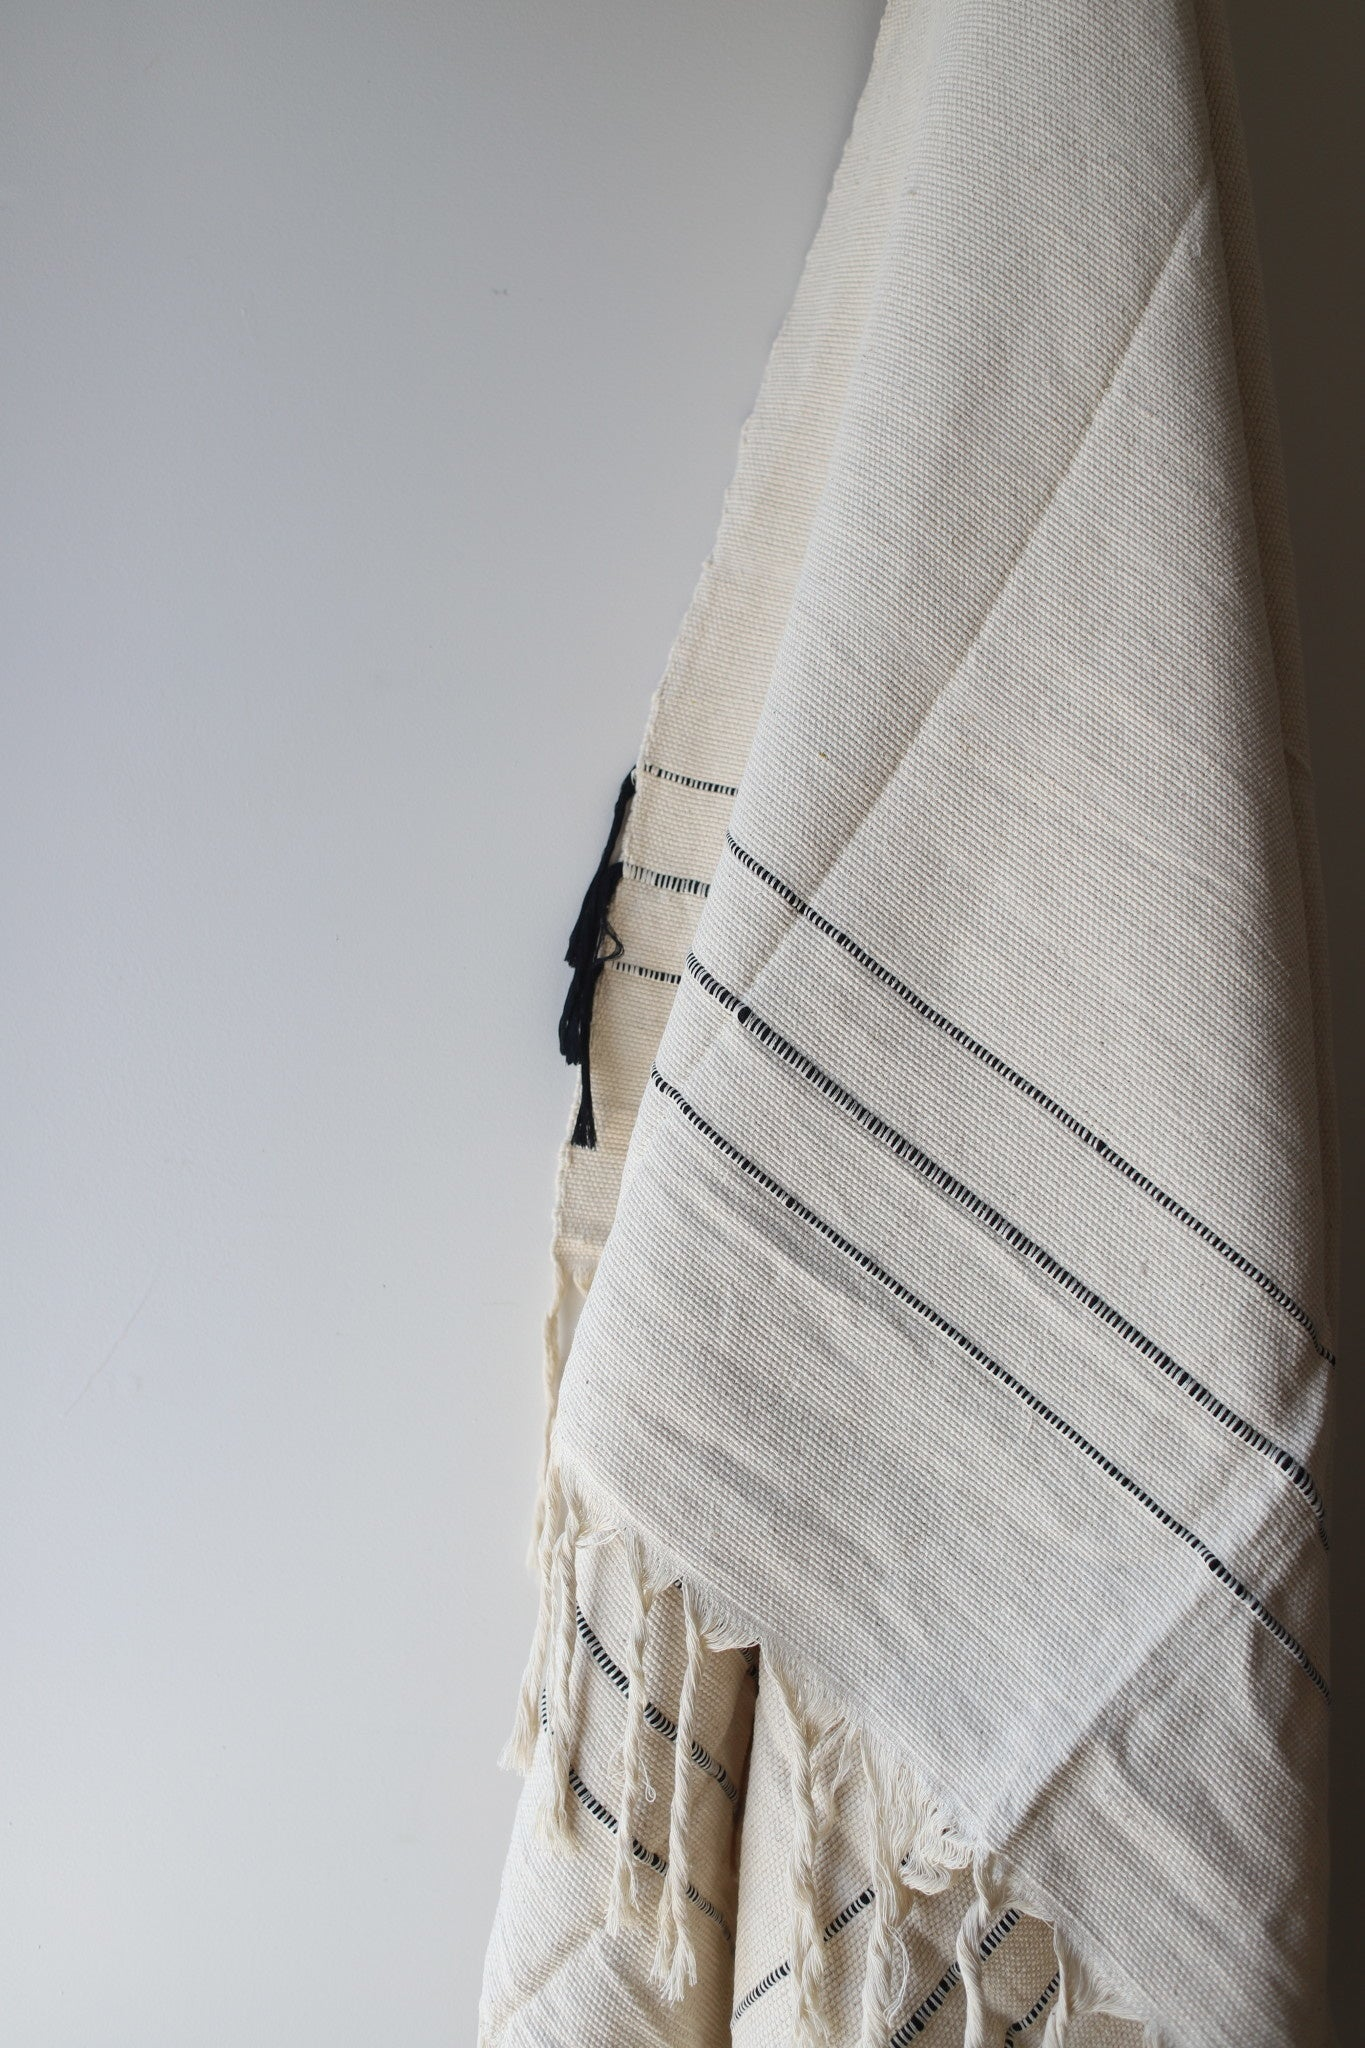 Moroccan Blanket - Medium #2 - Sailcloth & Black Stripe